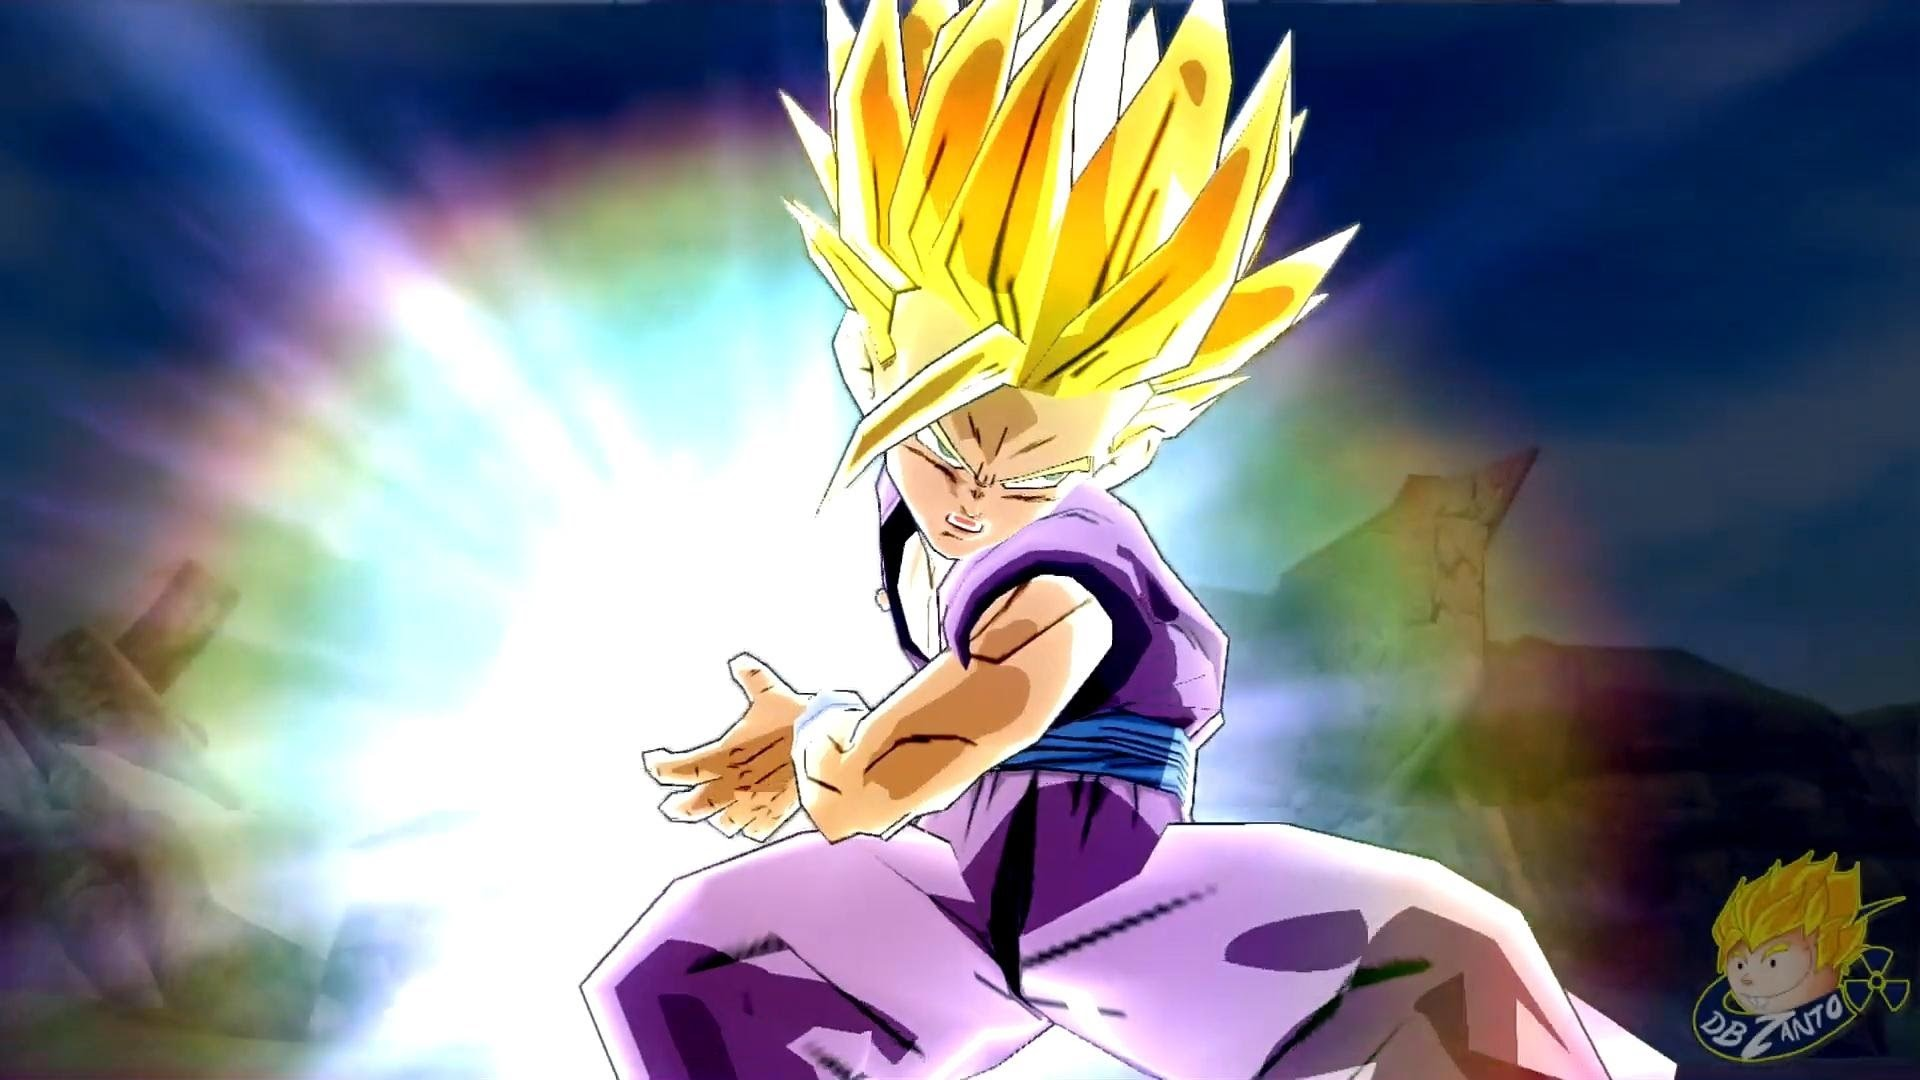 Teen Gohan Wallpaper 66 Images